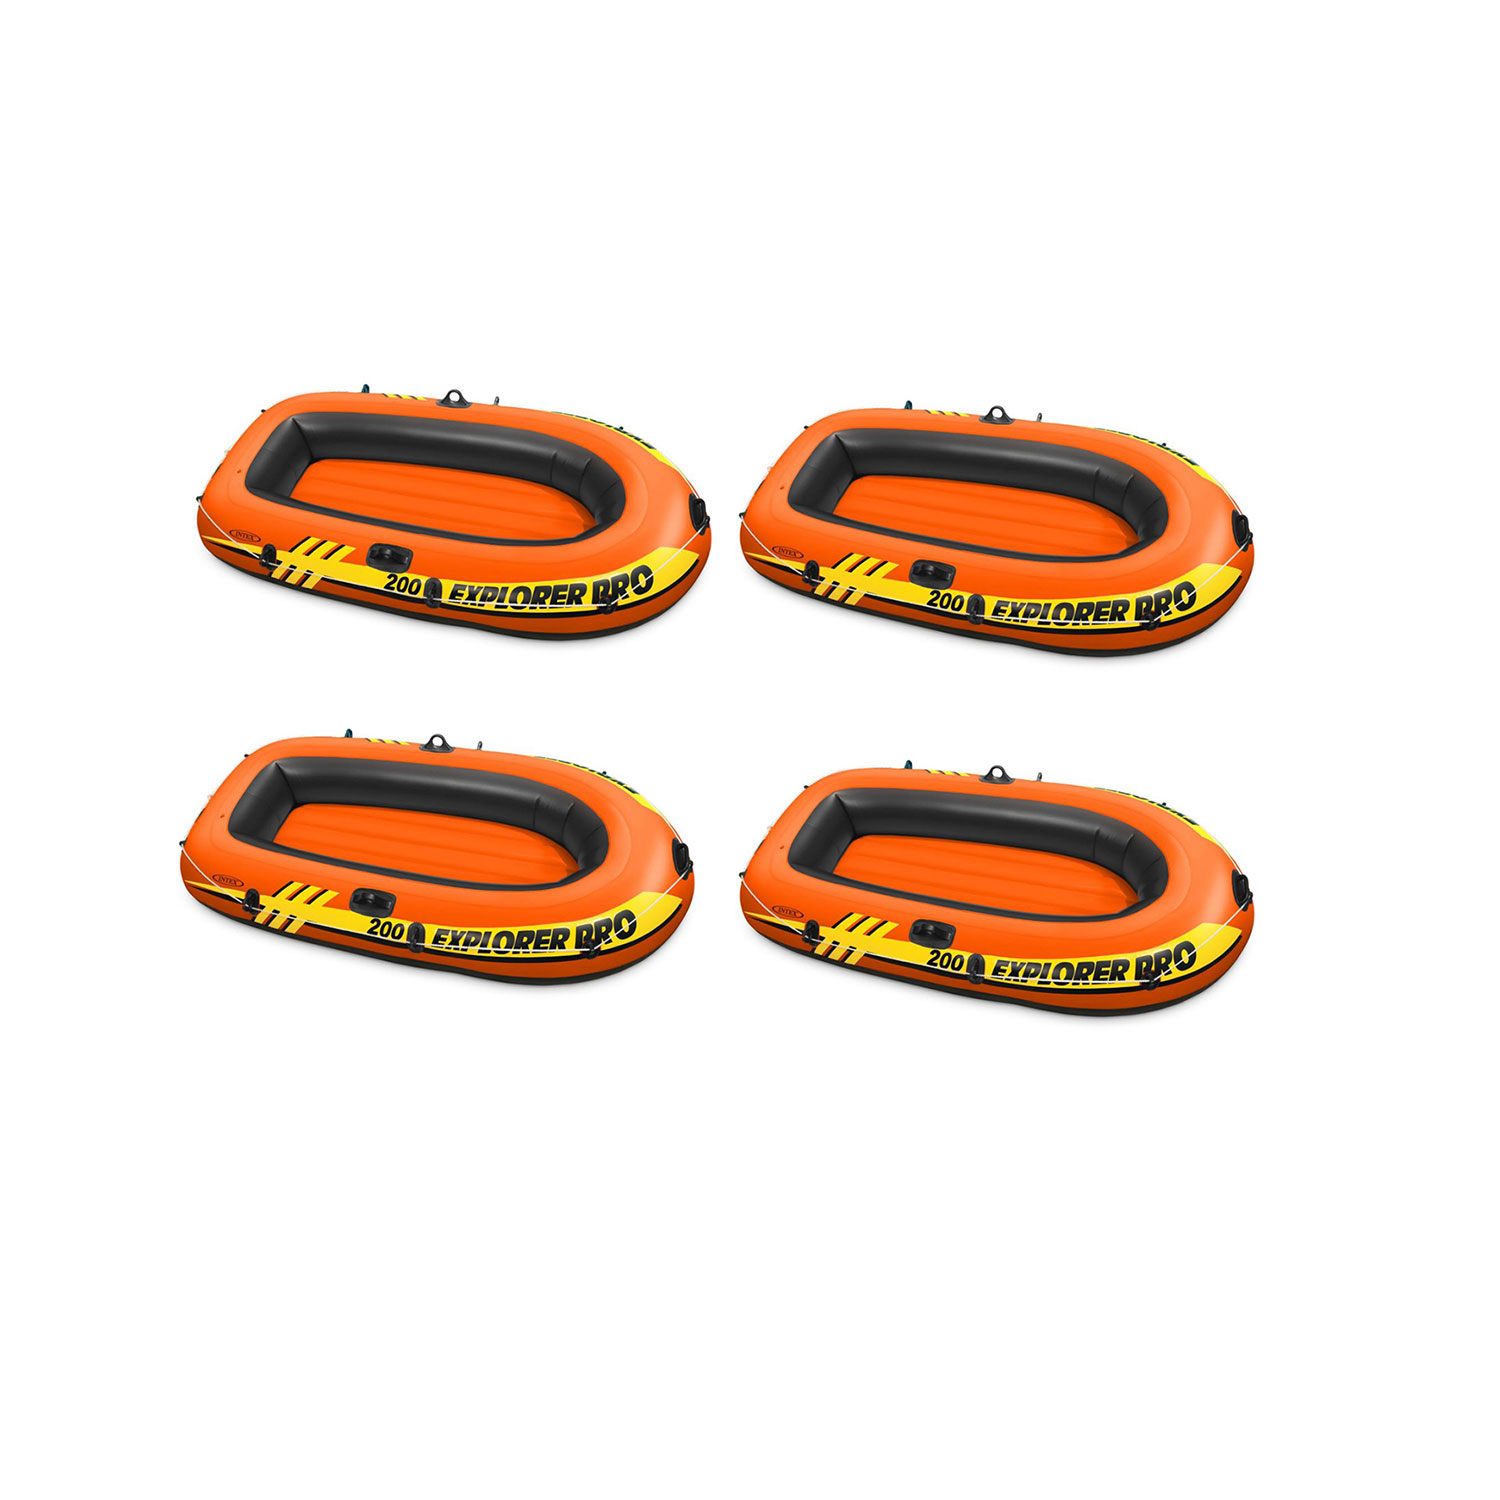 Intex Explorer Pro 200 Inflatable Youth Pool Boat Raft (Raft Only) (4 Pack) by Intex